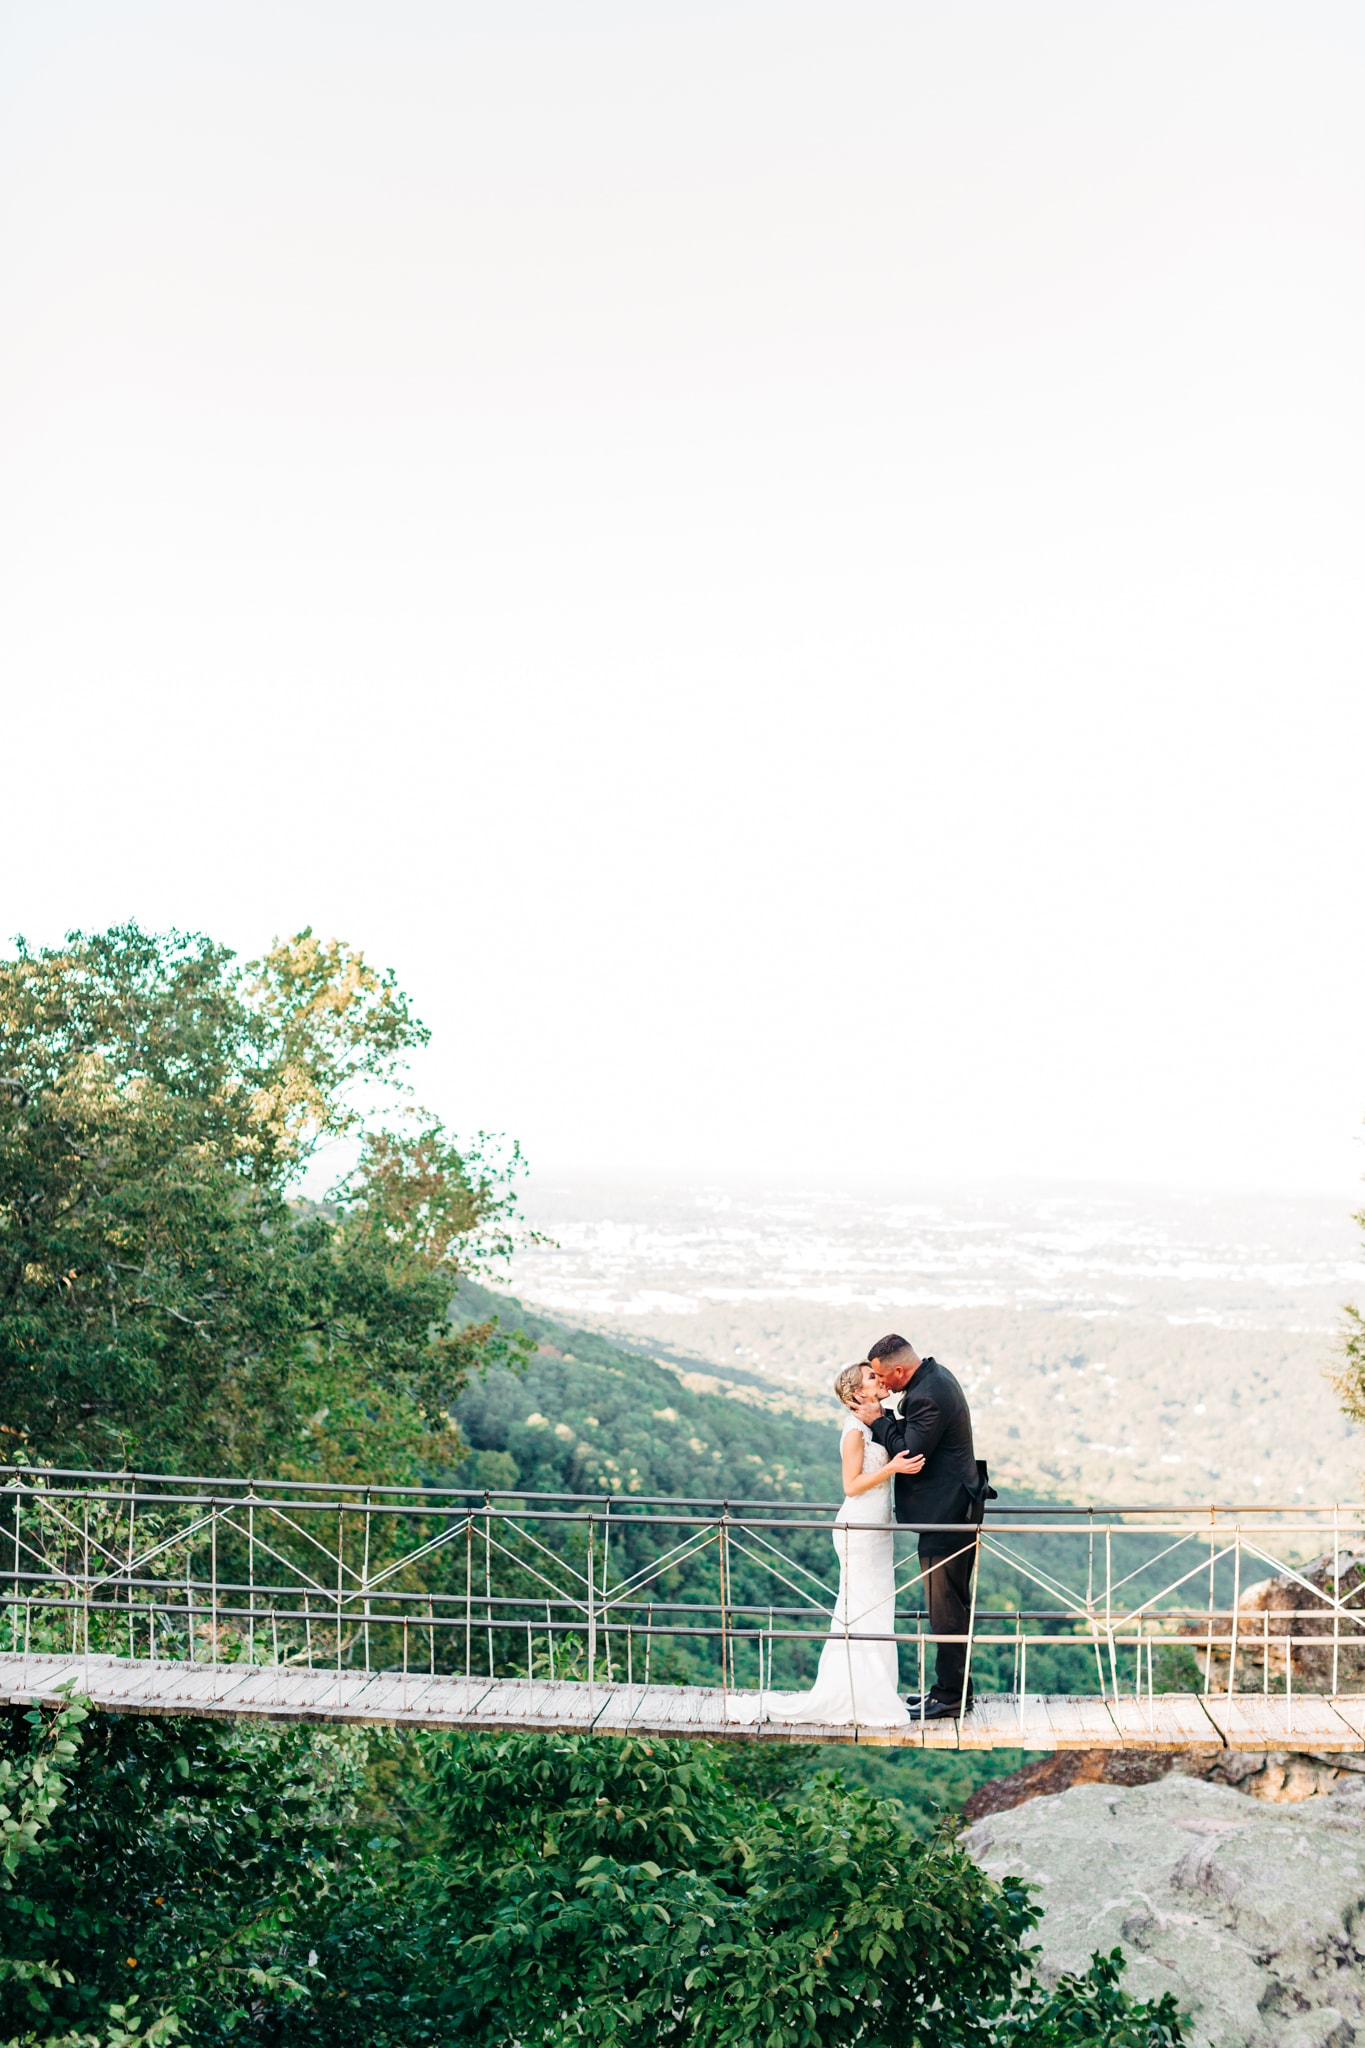 bride and groom kissing on bridge overlooking the mountains at the Grandview wedding venue